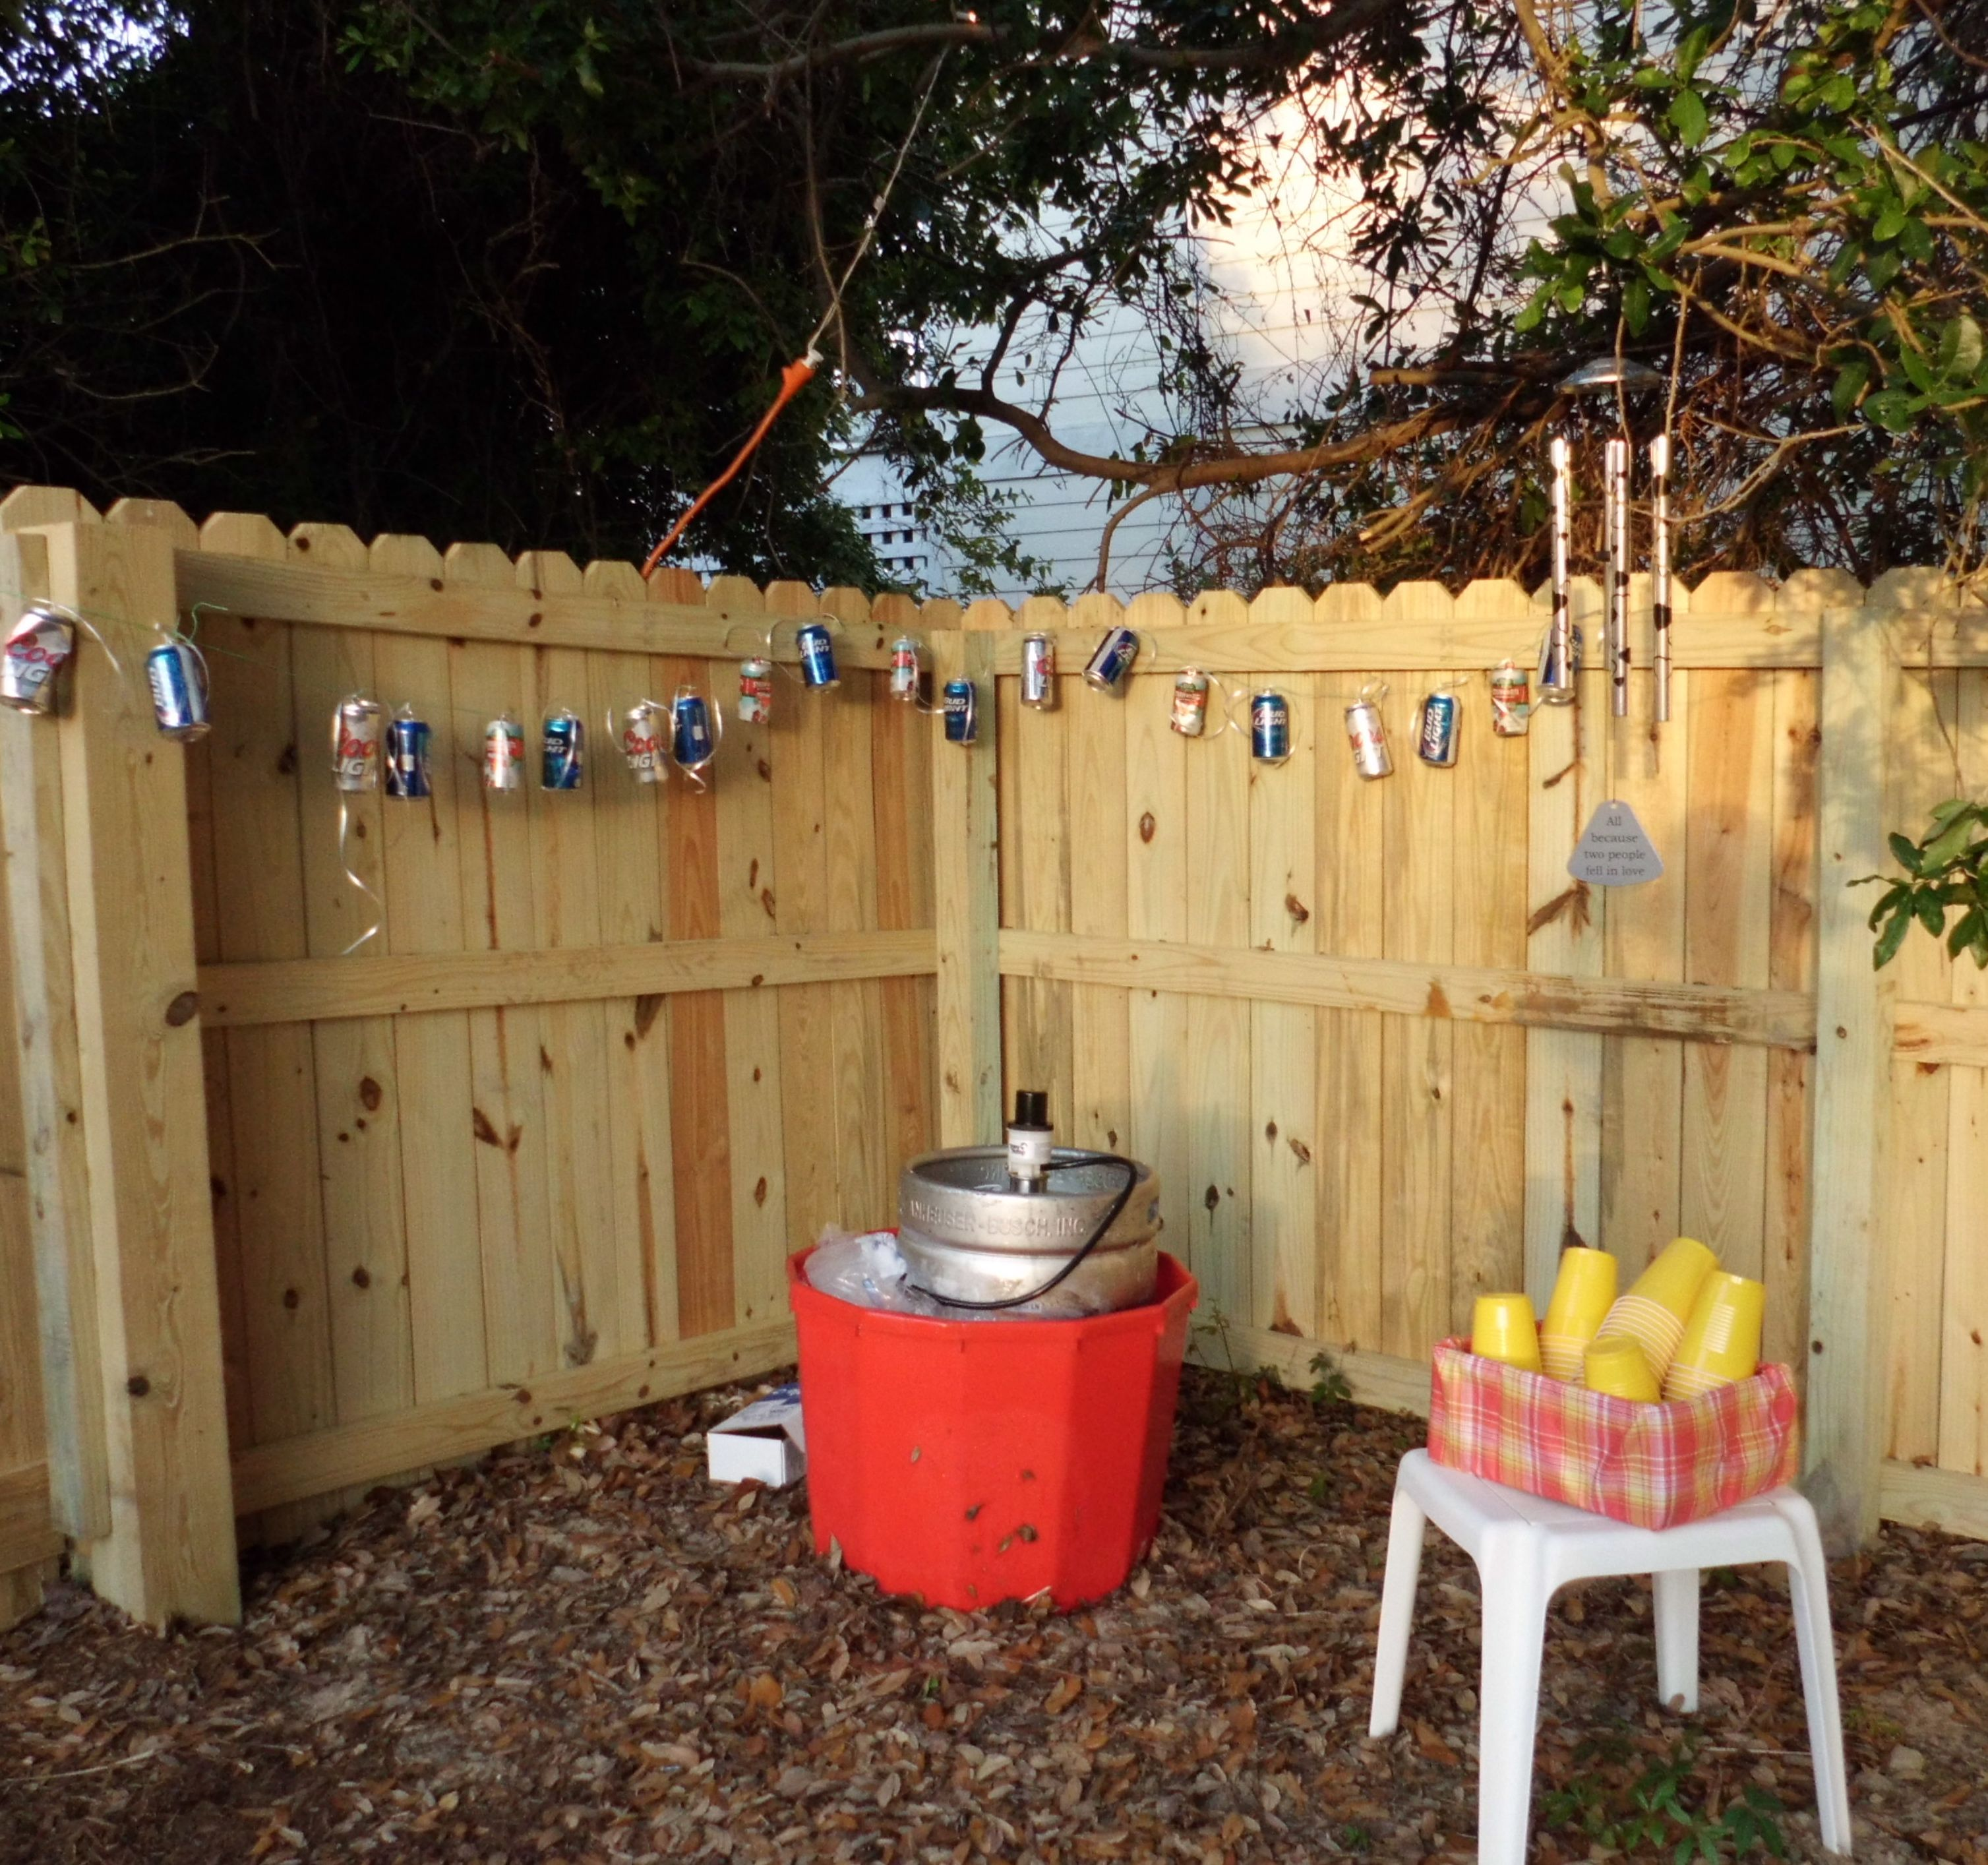 White Trash Christmas Decorations: Beer Can Garland By The Keg